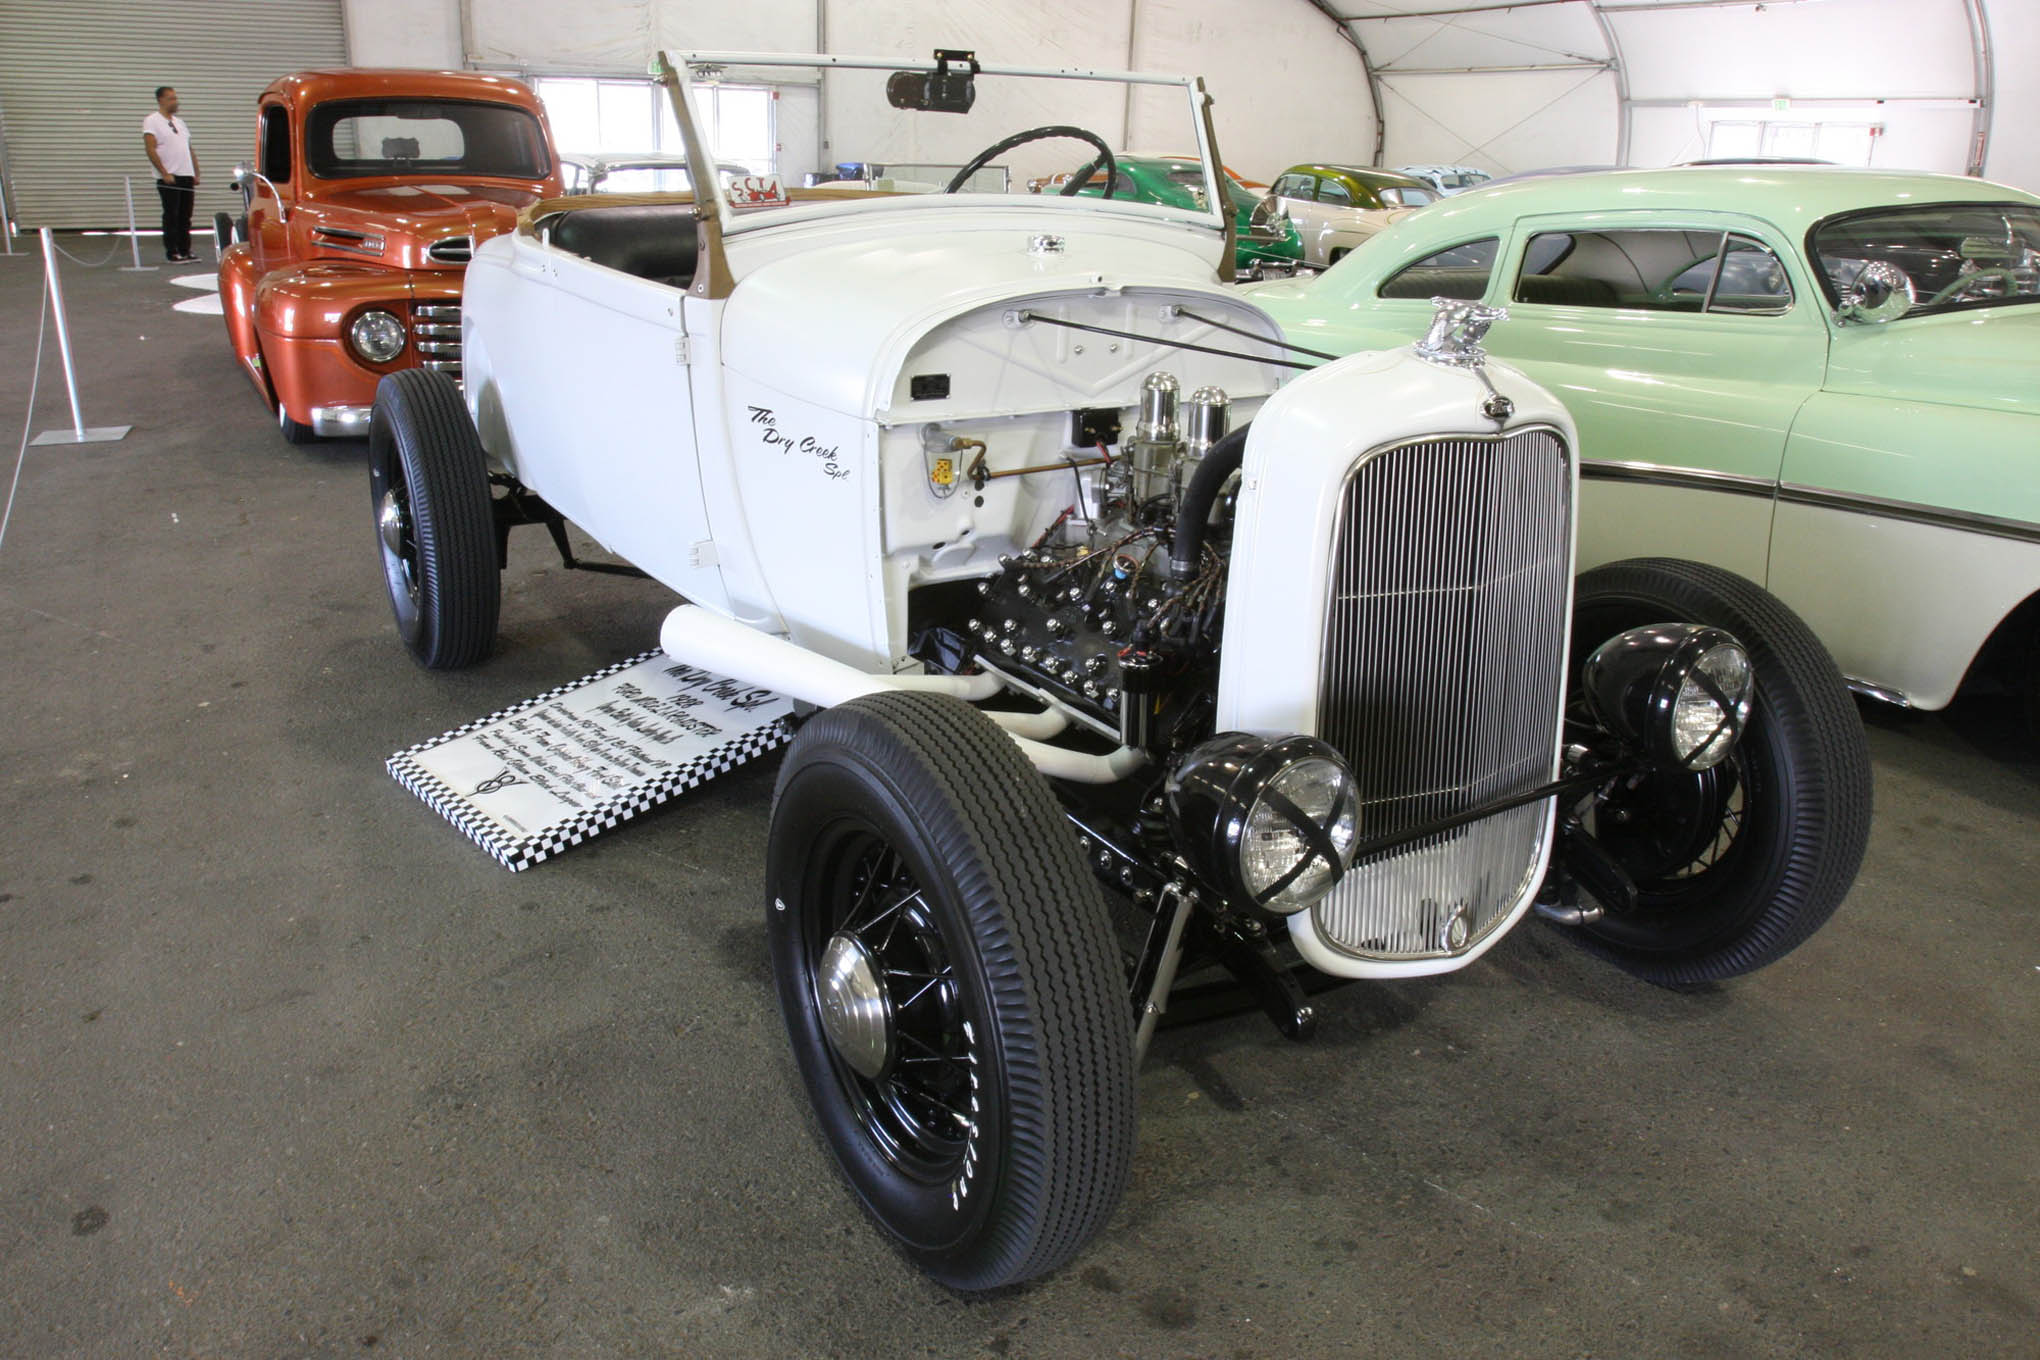 """The Suede Pavilion was a playground for retro hot rods like the """"Dry Creek Special."""" An original 1928 Ford steel body and frame—plus a 1951 Flathead engine, wire wheels, skinny piecrust rubber, and dedication to tradition are all part of the appeal."""